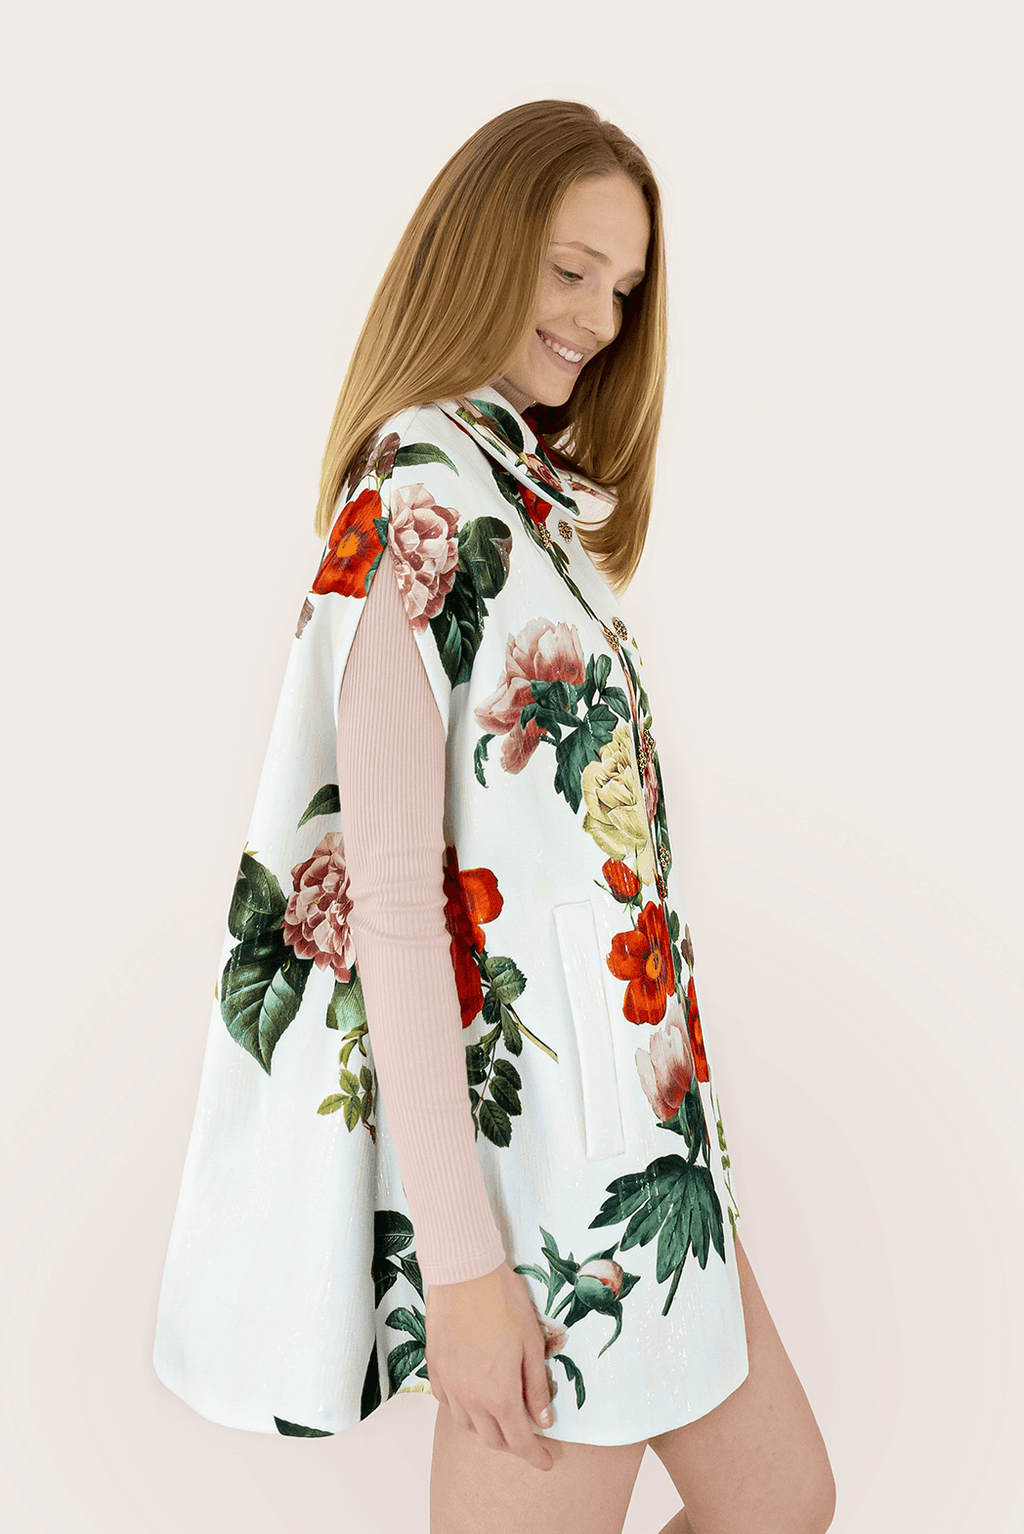 C Floral Sequin Cape - White_02